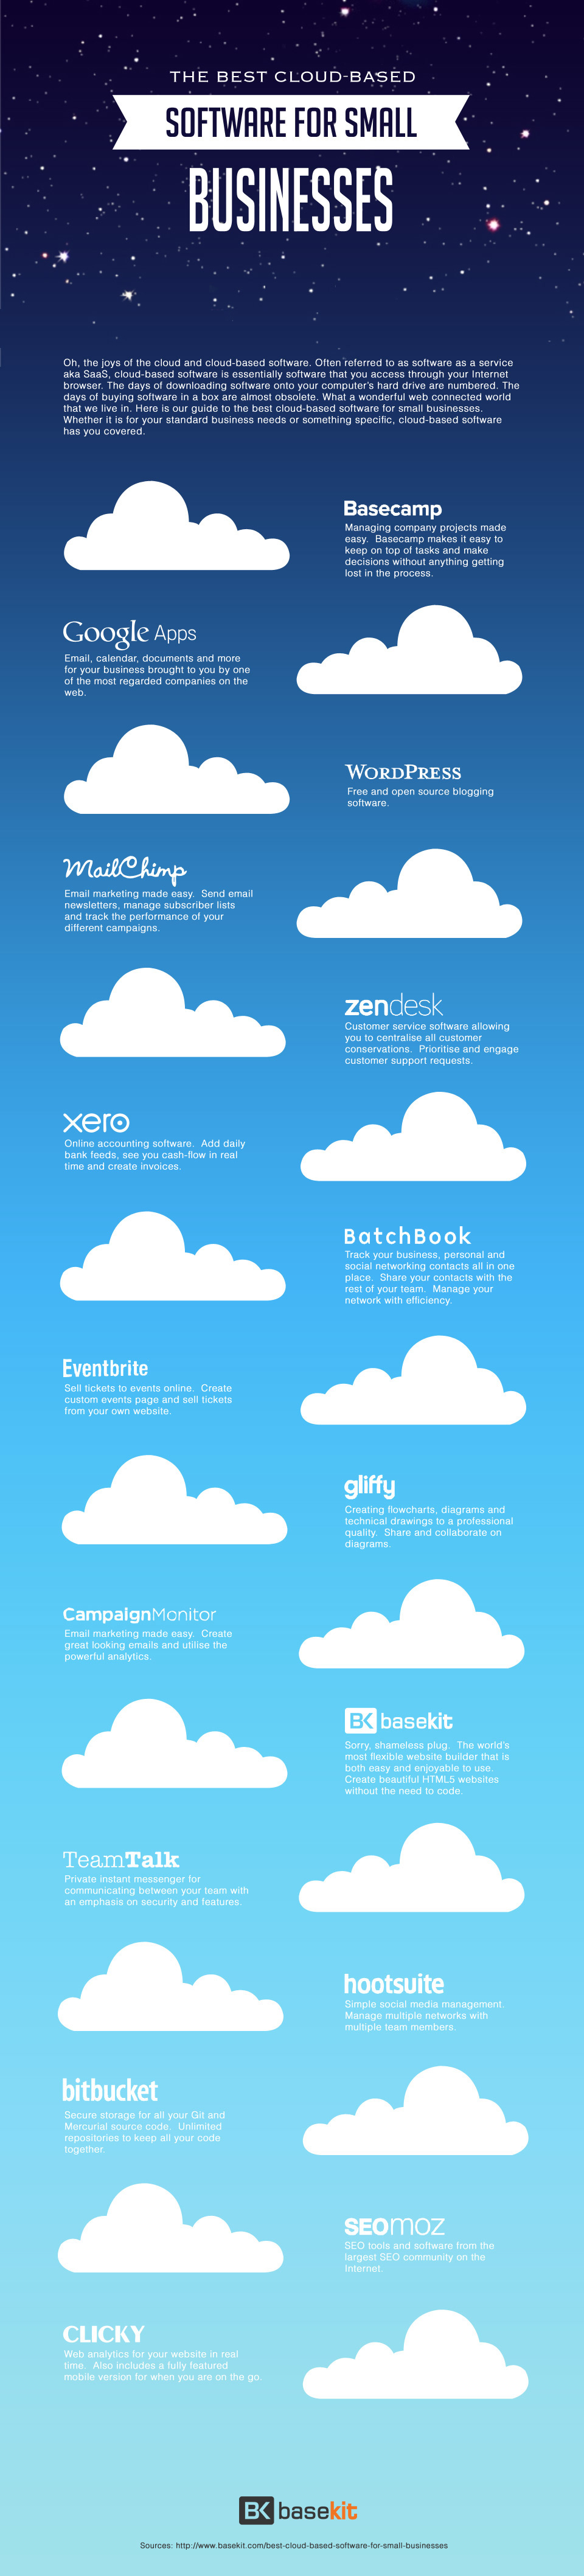 Small business cloud based software development